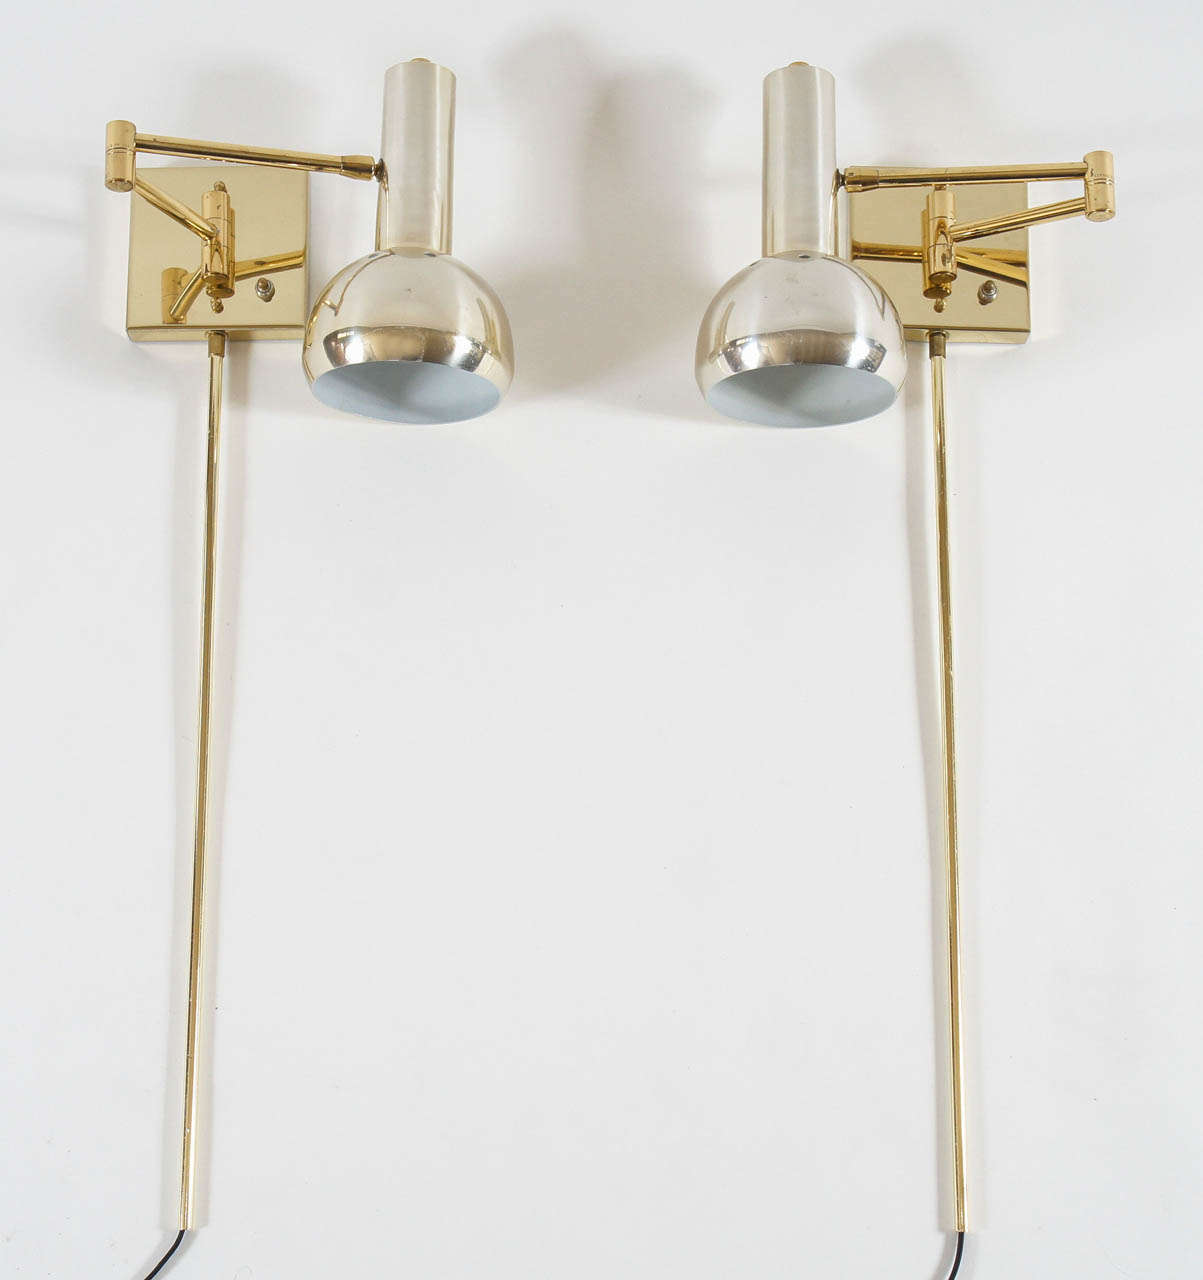 vintage brass swing arm wall mount reading lamps italy c 1970. Black Bedroom Furniture Sets. Home Design Ideas